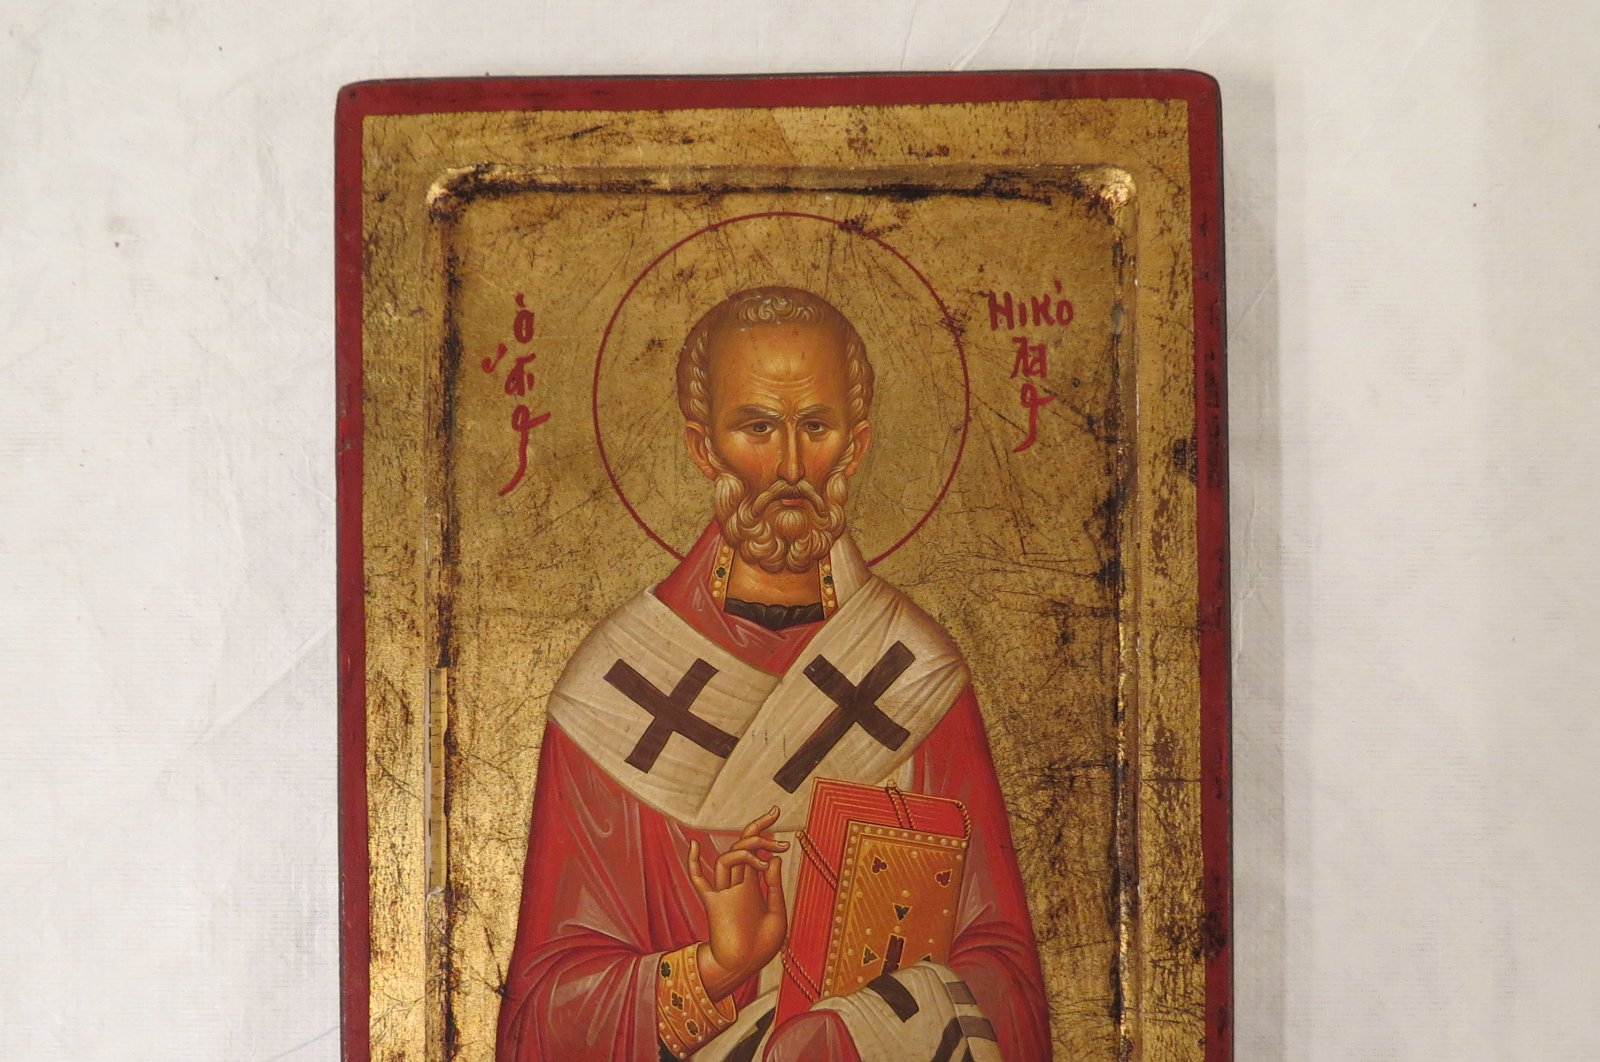 An icon stolen from the Gökçeada churches. (Courtesy of Turkey's Ministry of Culture and Tourism)